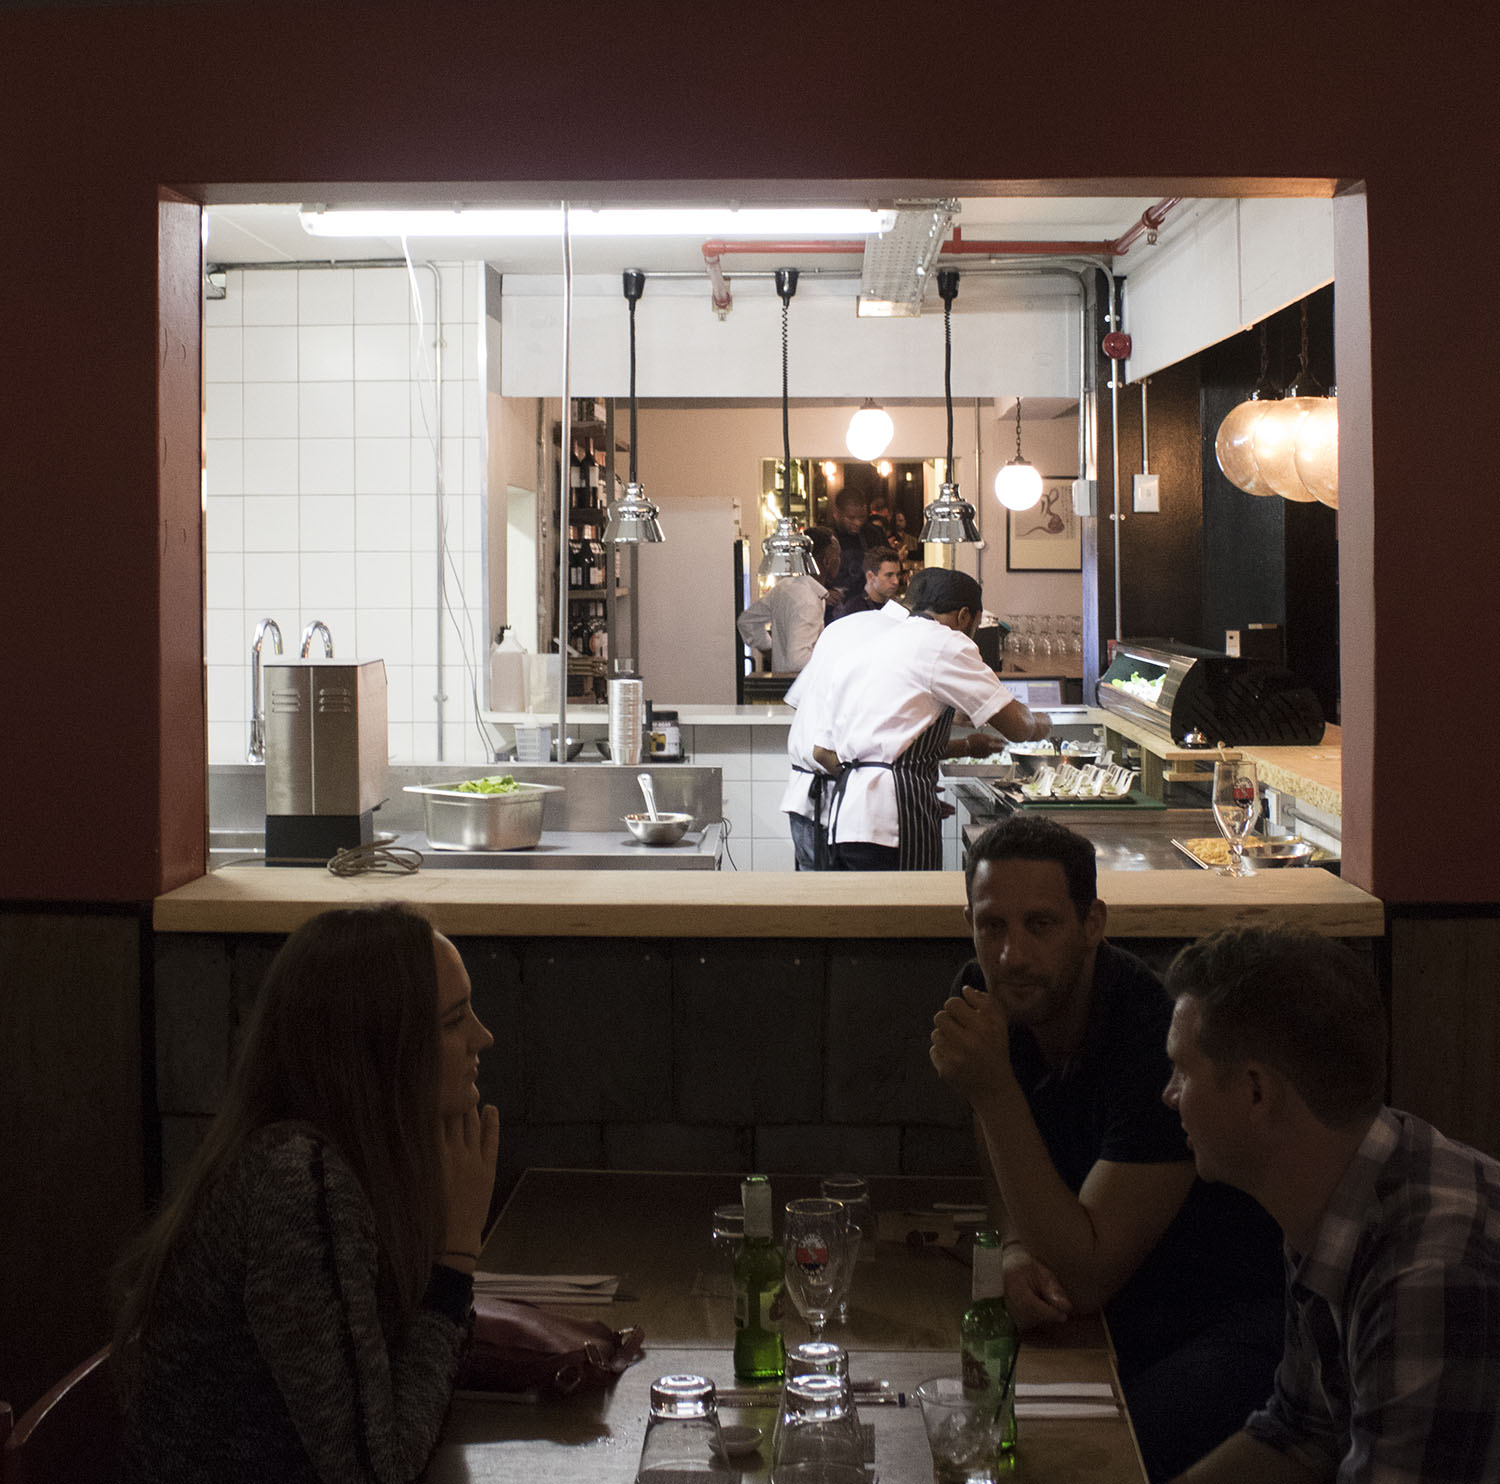 Town Kitchen And Bar: YUZU Kitchen & Bar Has Opened In Cape Town